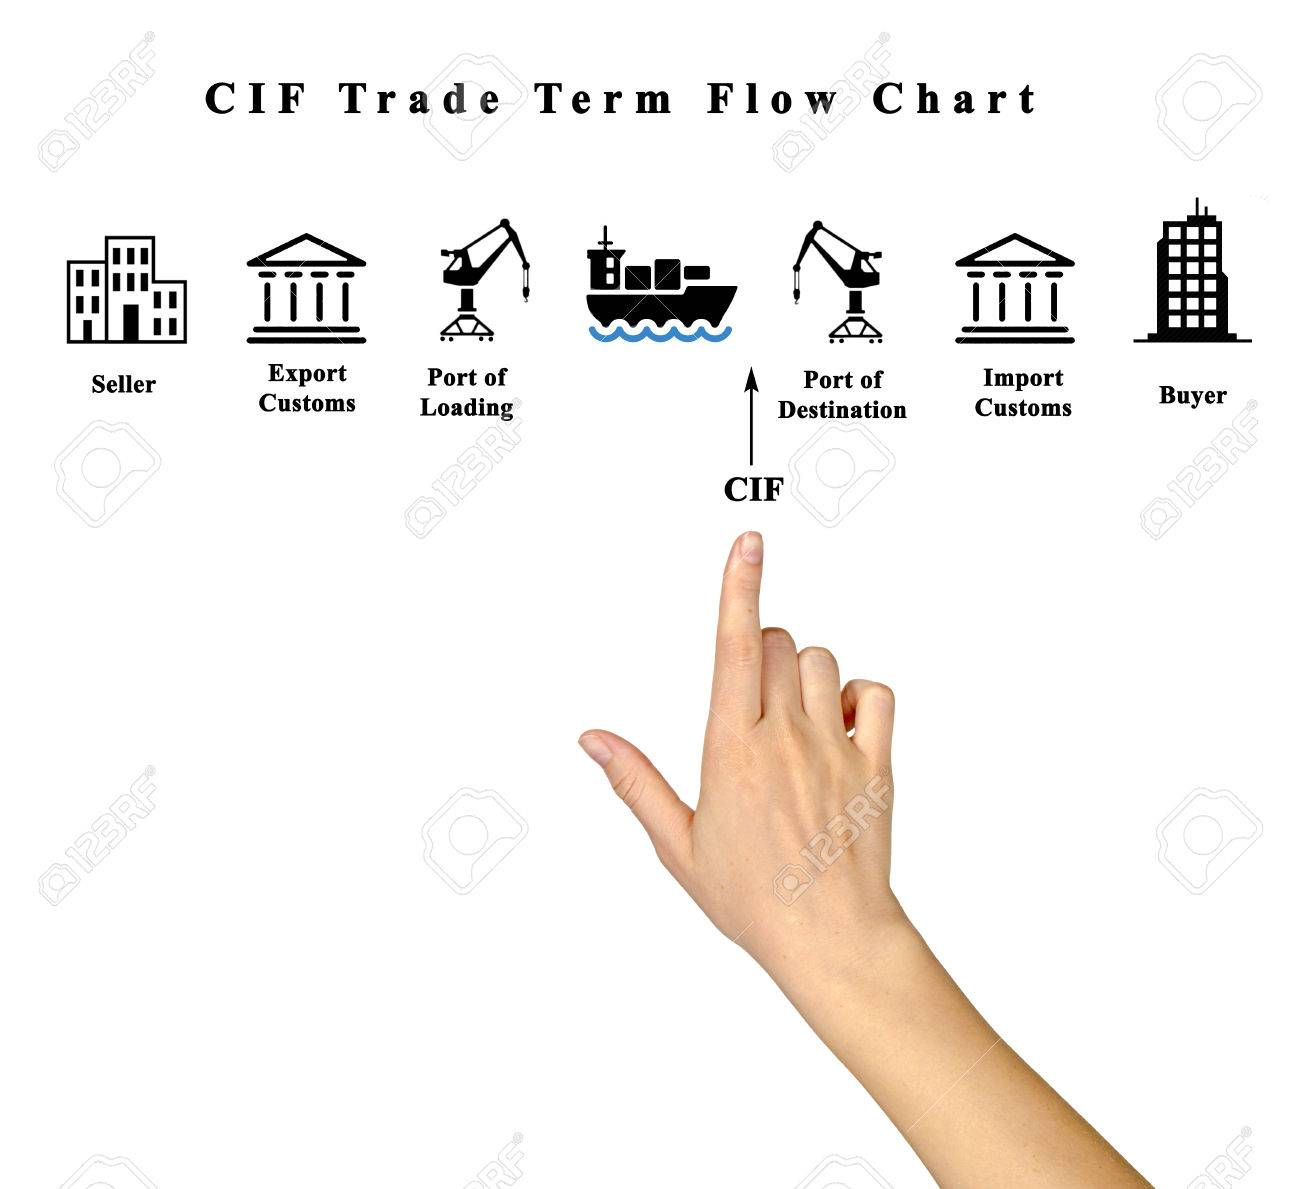 hight resolution of cif trade term flow chart stock photo 61712200